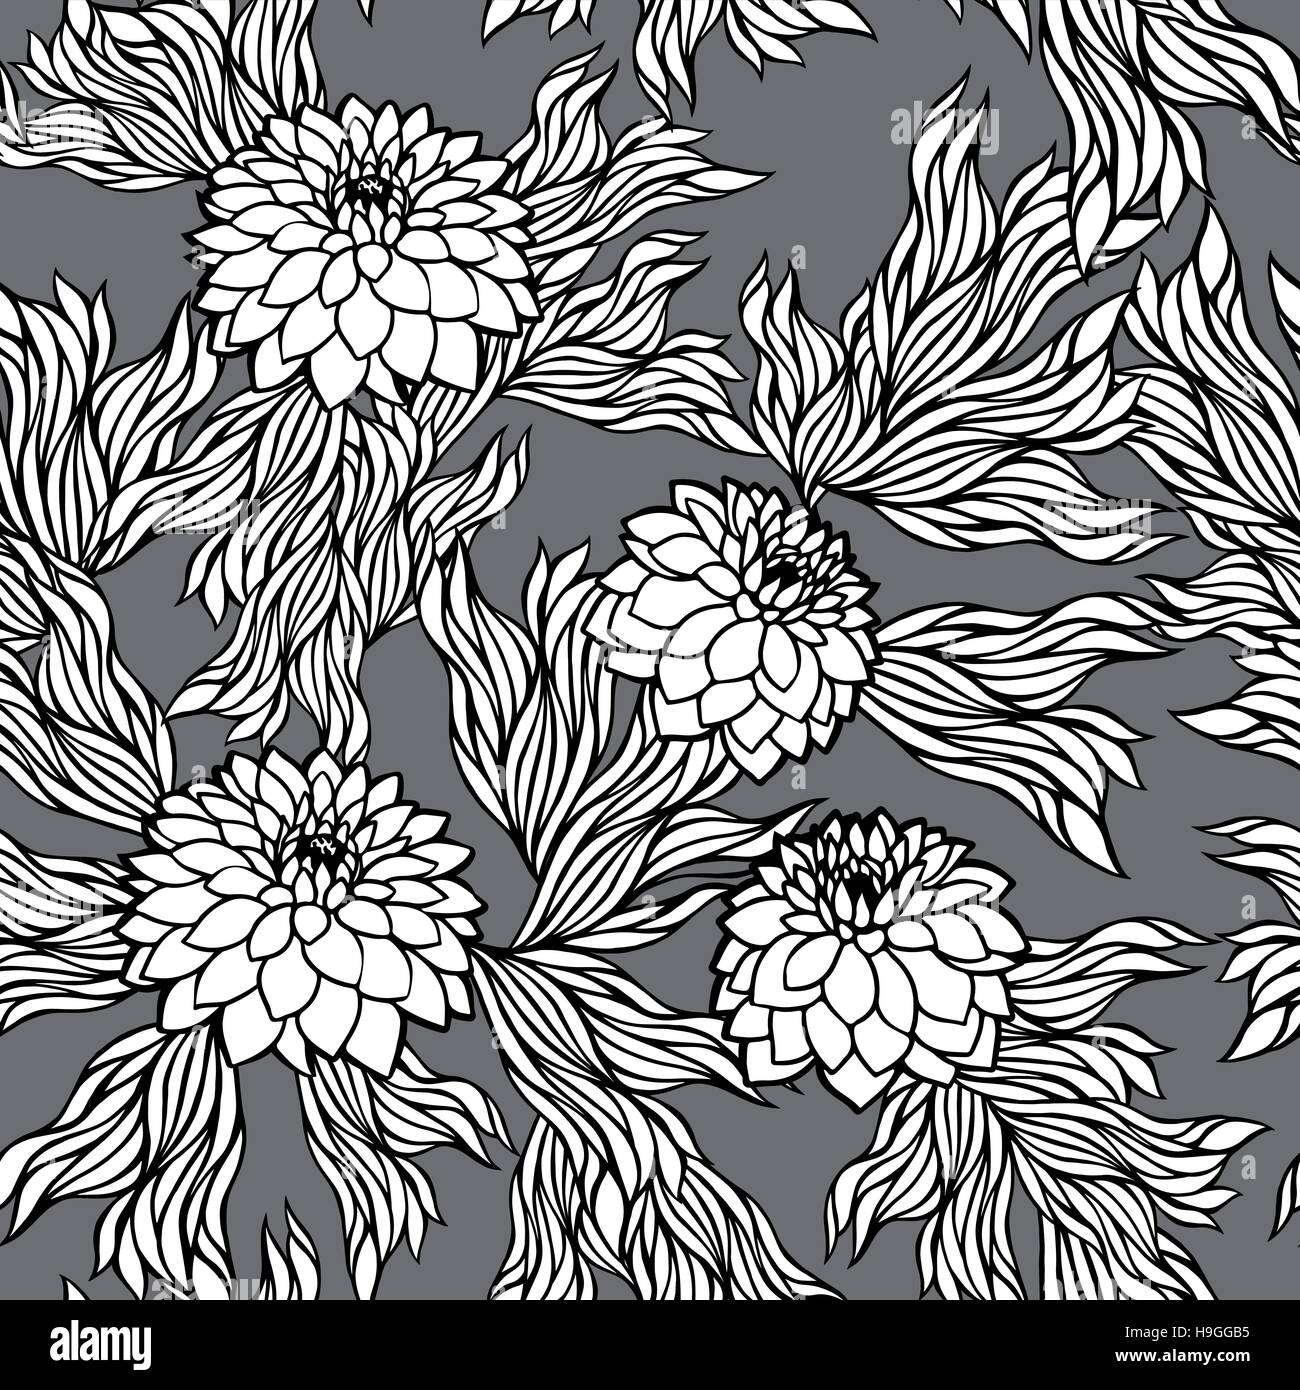 Vector Seamless Floral Pattern Black And White Monochrome In Retro Vintage Style Aster Peony Chrysanthemum Dahlia For Wallpaper Postcard Print T